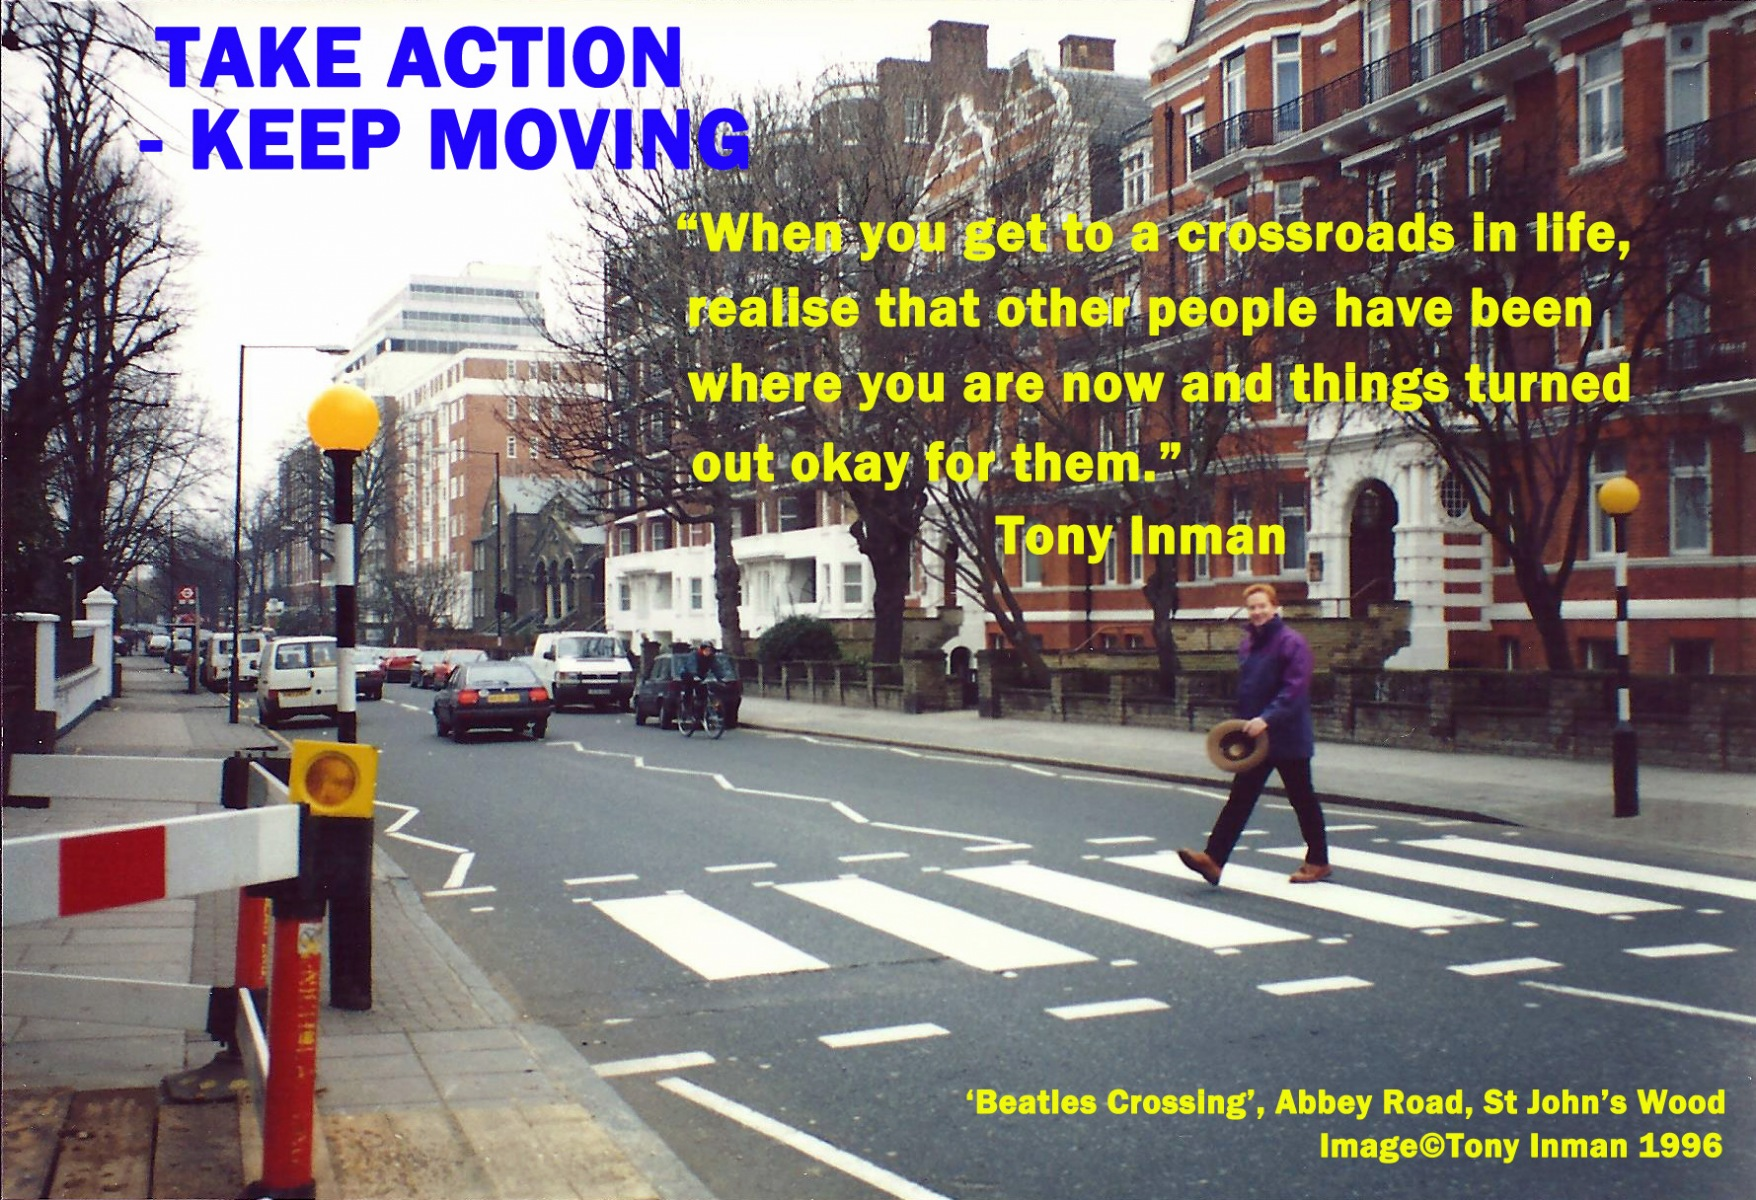 Take-Action-Beatles-crossing-StJohns-Wood-1996